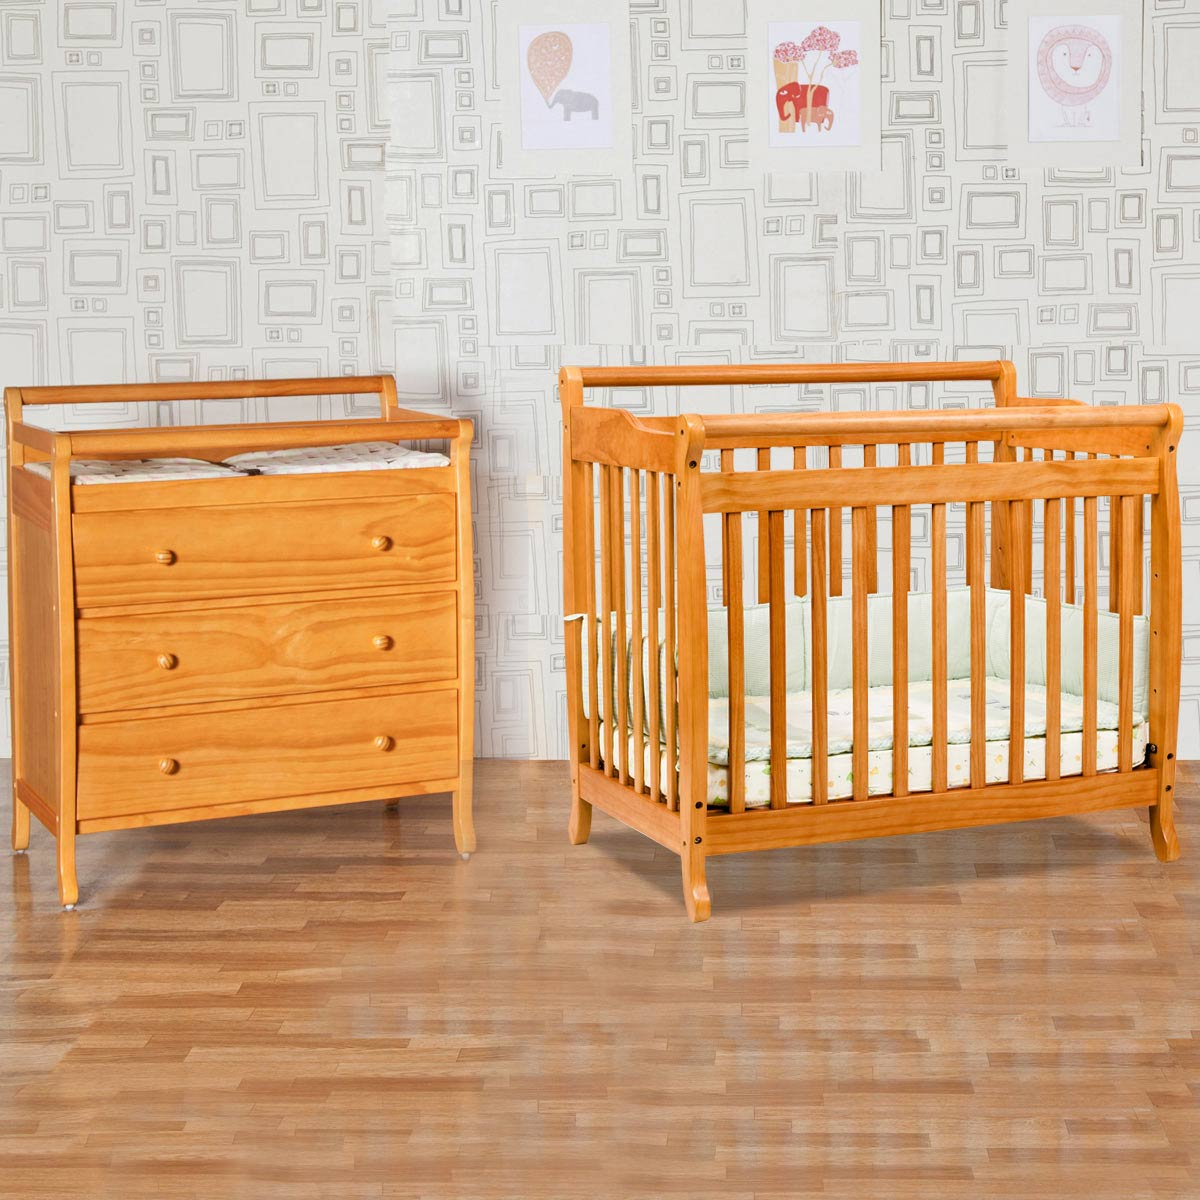 look pictures orange carpet hotel and crib furniture boy remarkable your blue oak bedroom walls cribs for wall baby with images decorated design colorful nursery in that splendid cabinetry